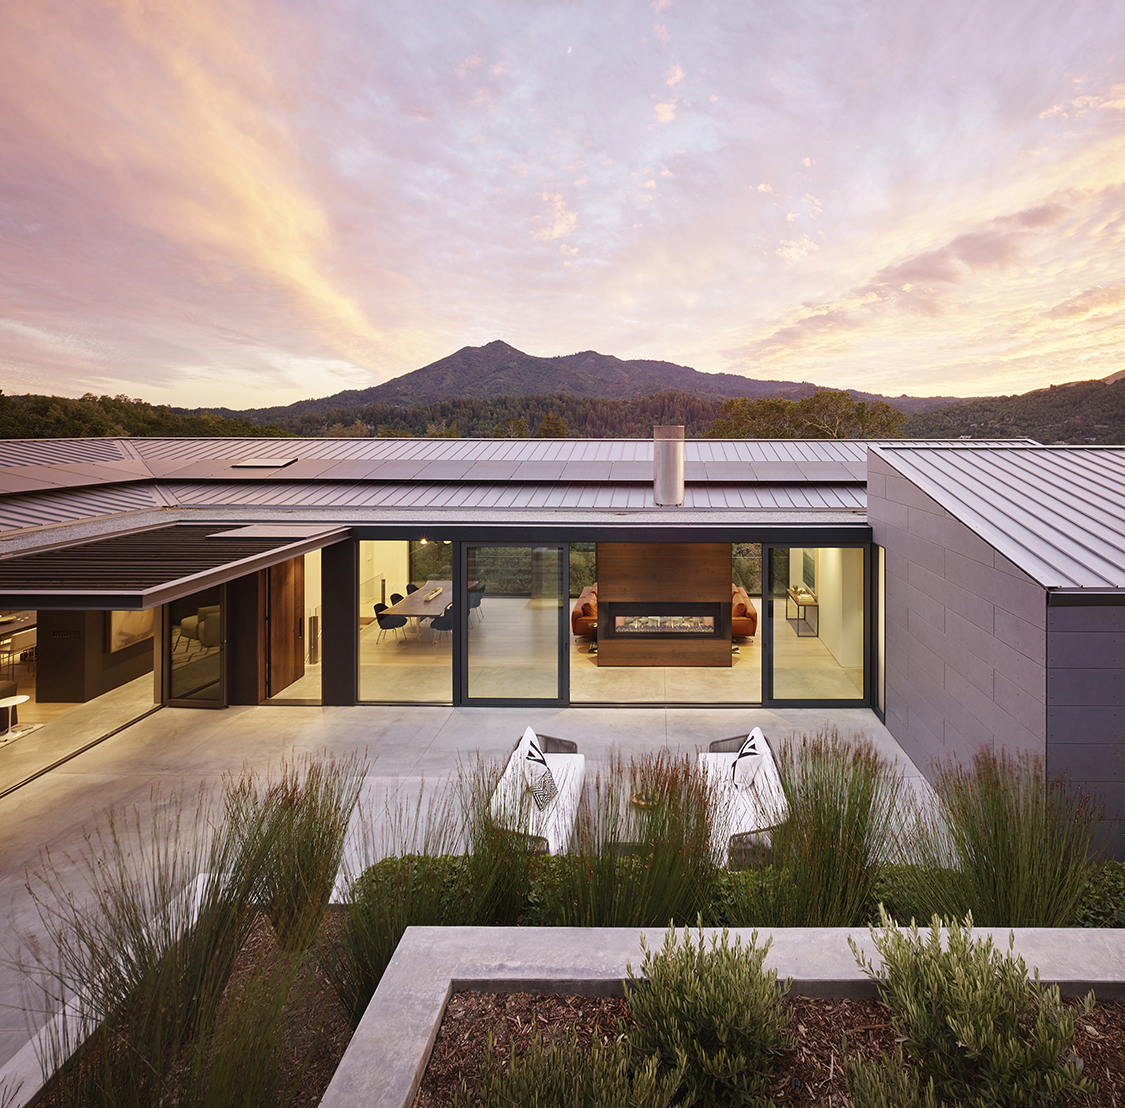 Ross Hillside modern home outside view with sunset